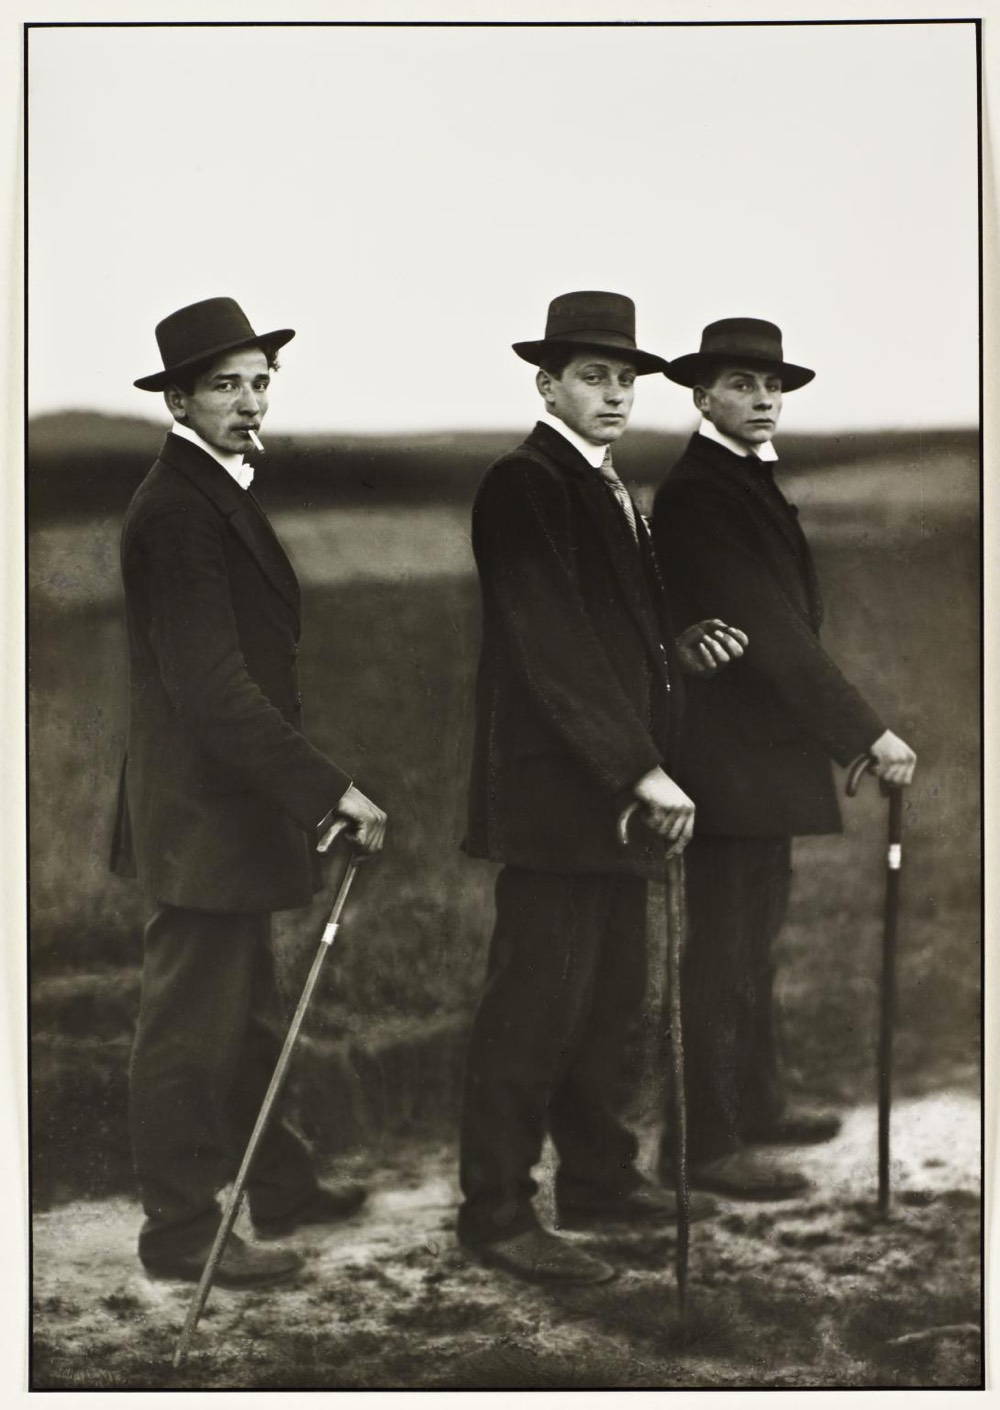 August Sander Young Farmers